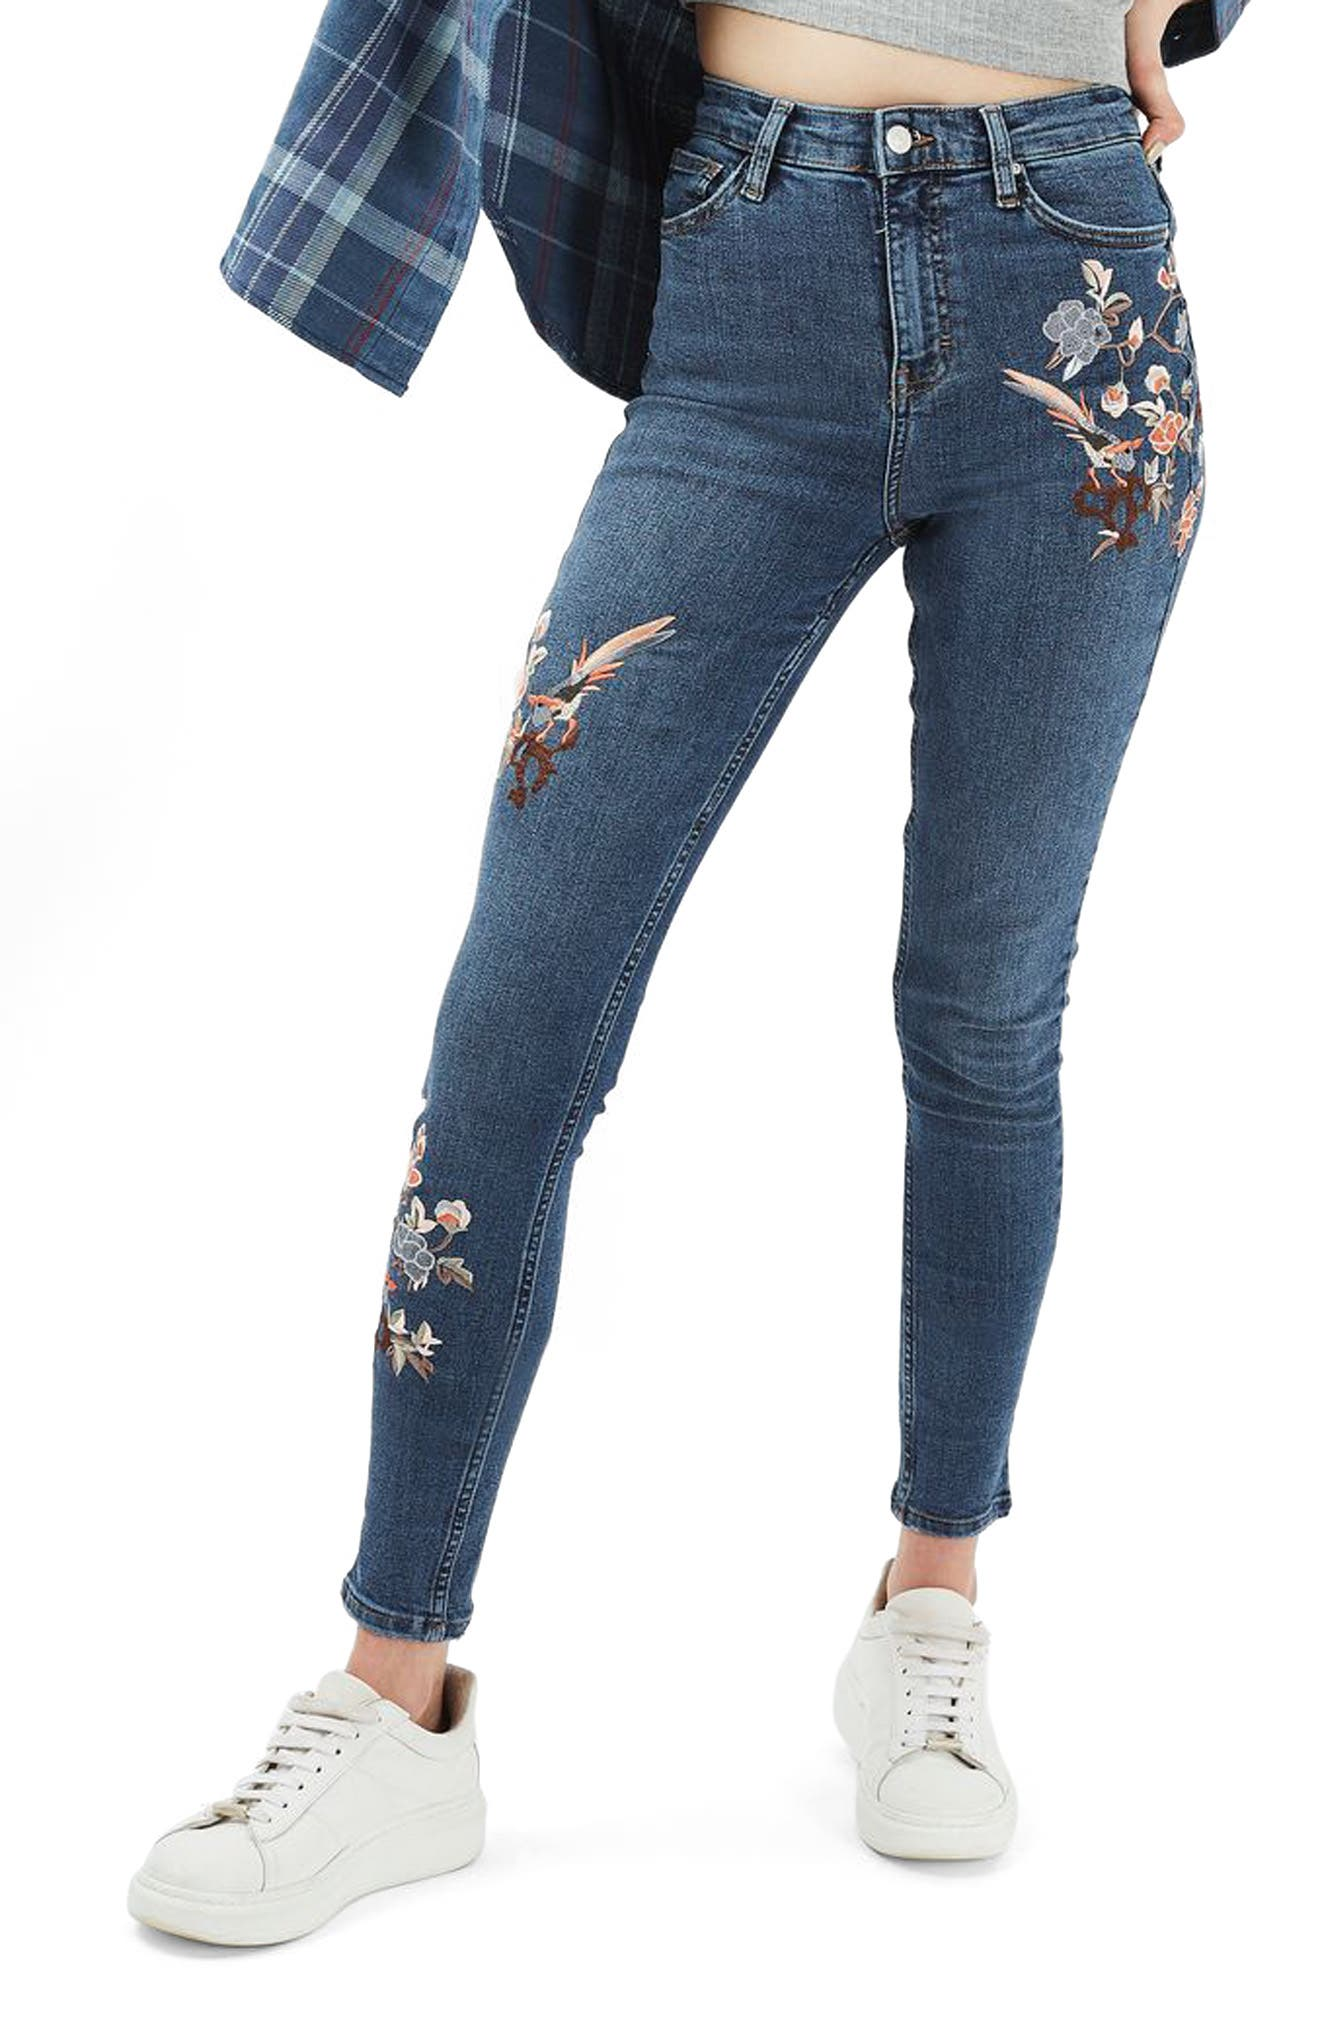 Main Image - Topshop Jamie Embroidered Skinny Jeans (Tall)